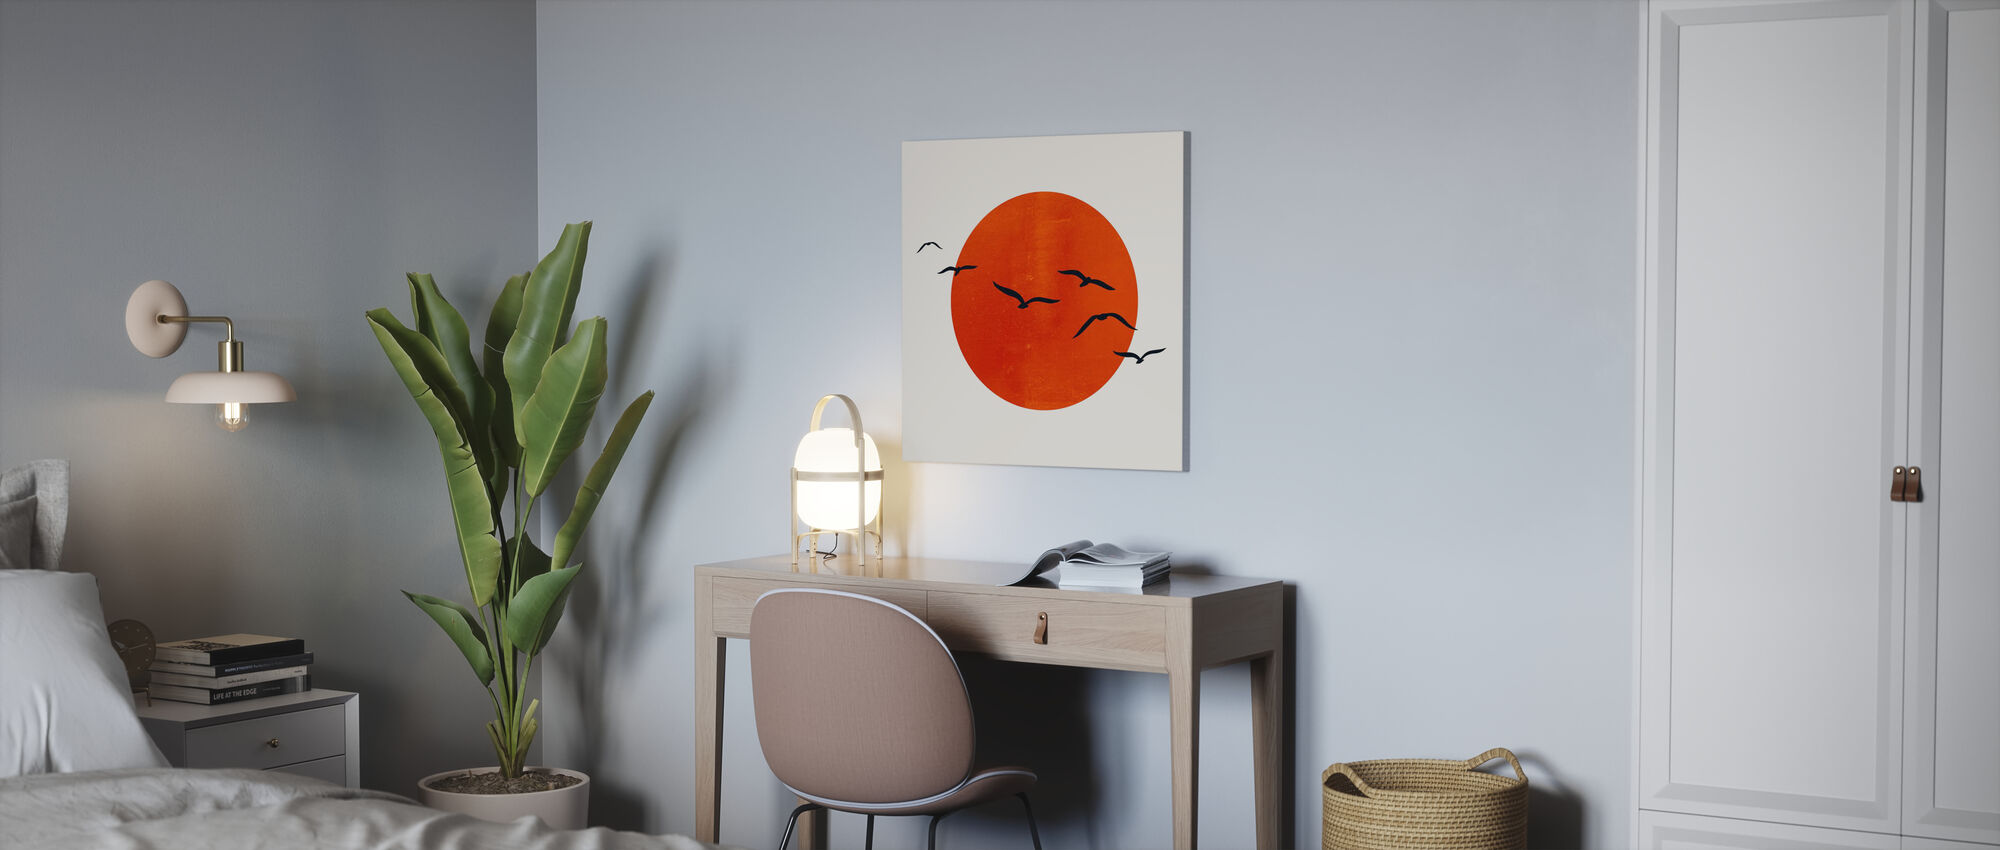 Up in the Sky - Canvas print - Office